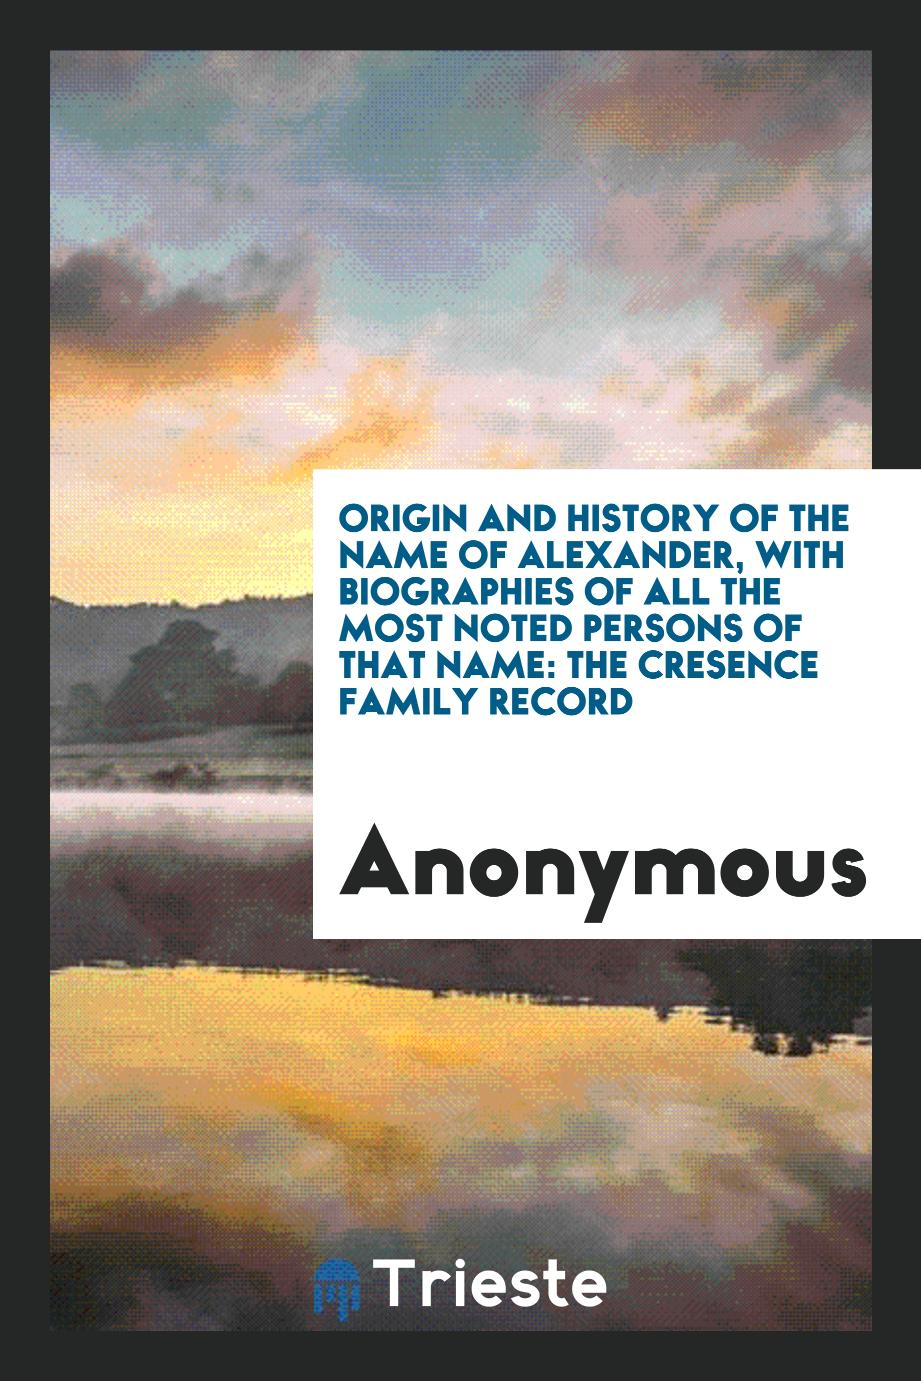 Origin and History of the Name of Alexander, with Biographies of All the Most Noted Persons of that Name: The Cresence Family Record